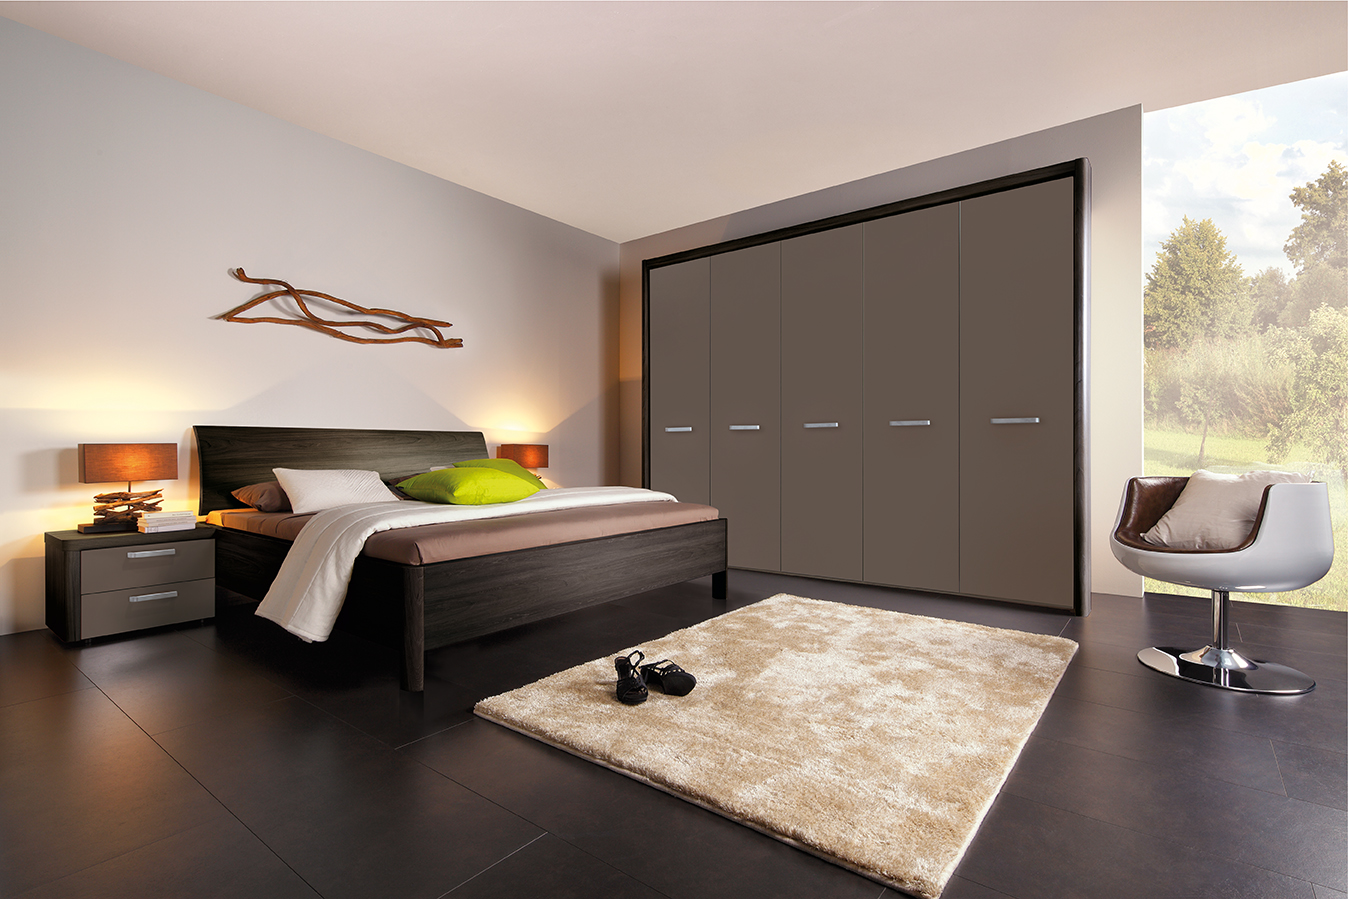 schlafzimmer treitinger m belhaus. Black Bedroom Furniture Sets. Home Design Ideas